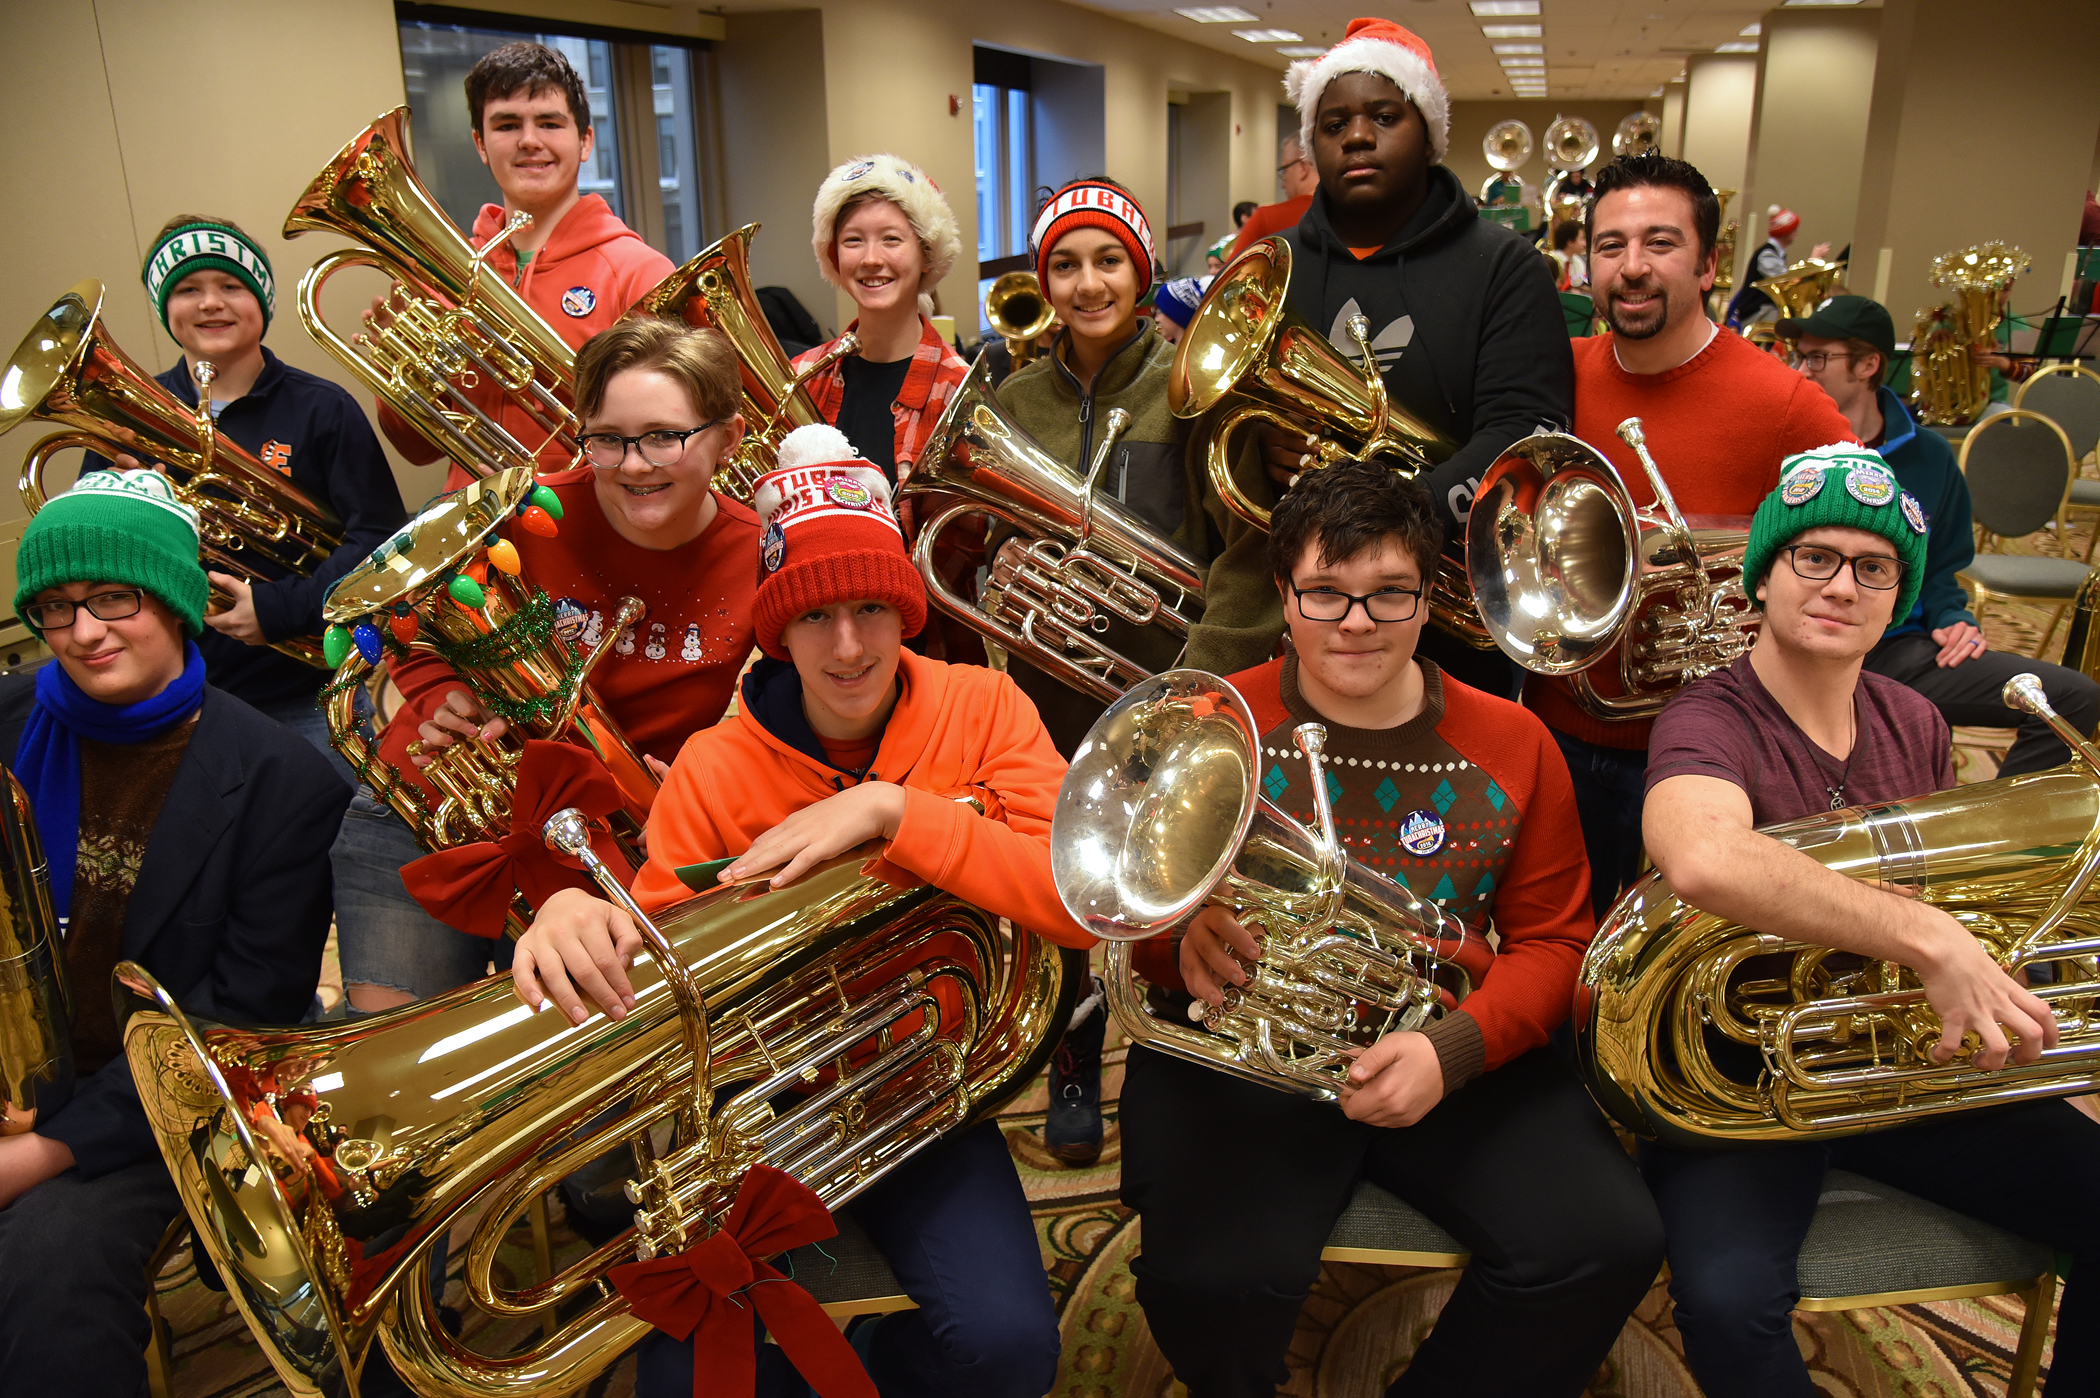 Musicians carry on a very tuba Christmas tradition   Chronicle Media